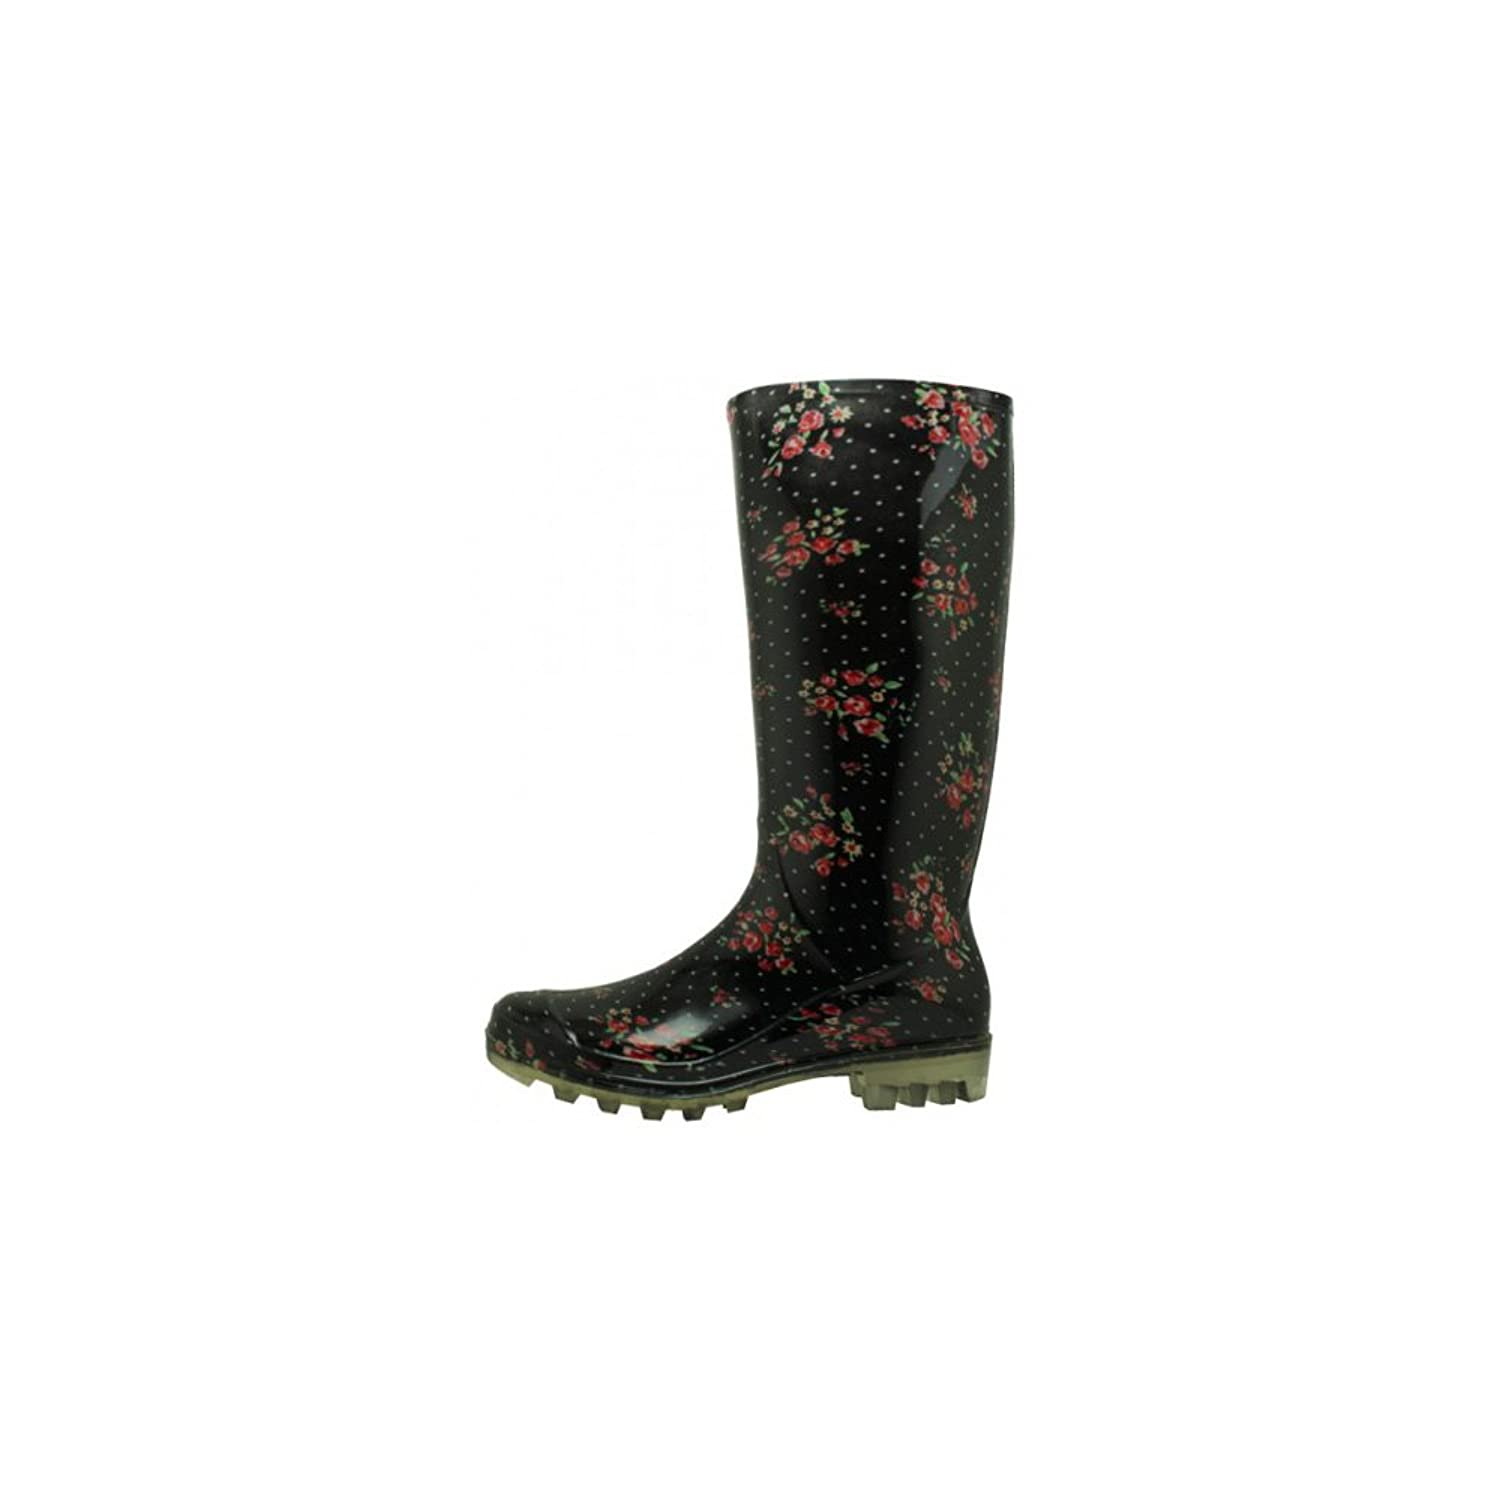 Women's Ladies Ditsy Floral Printed Lightweight Waterproof Rain Boots, 13 1/4 Inches